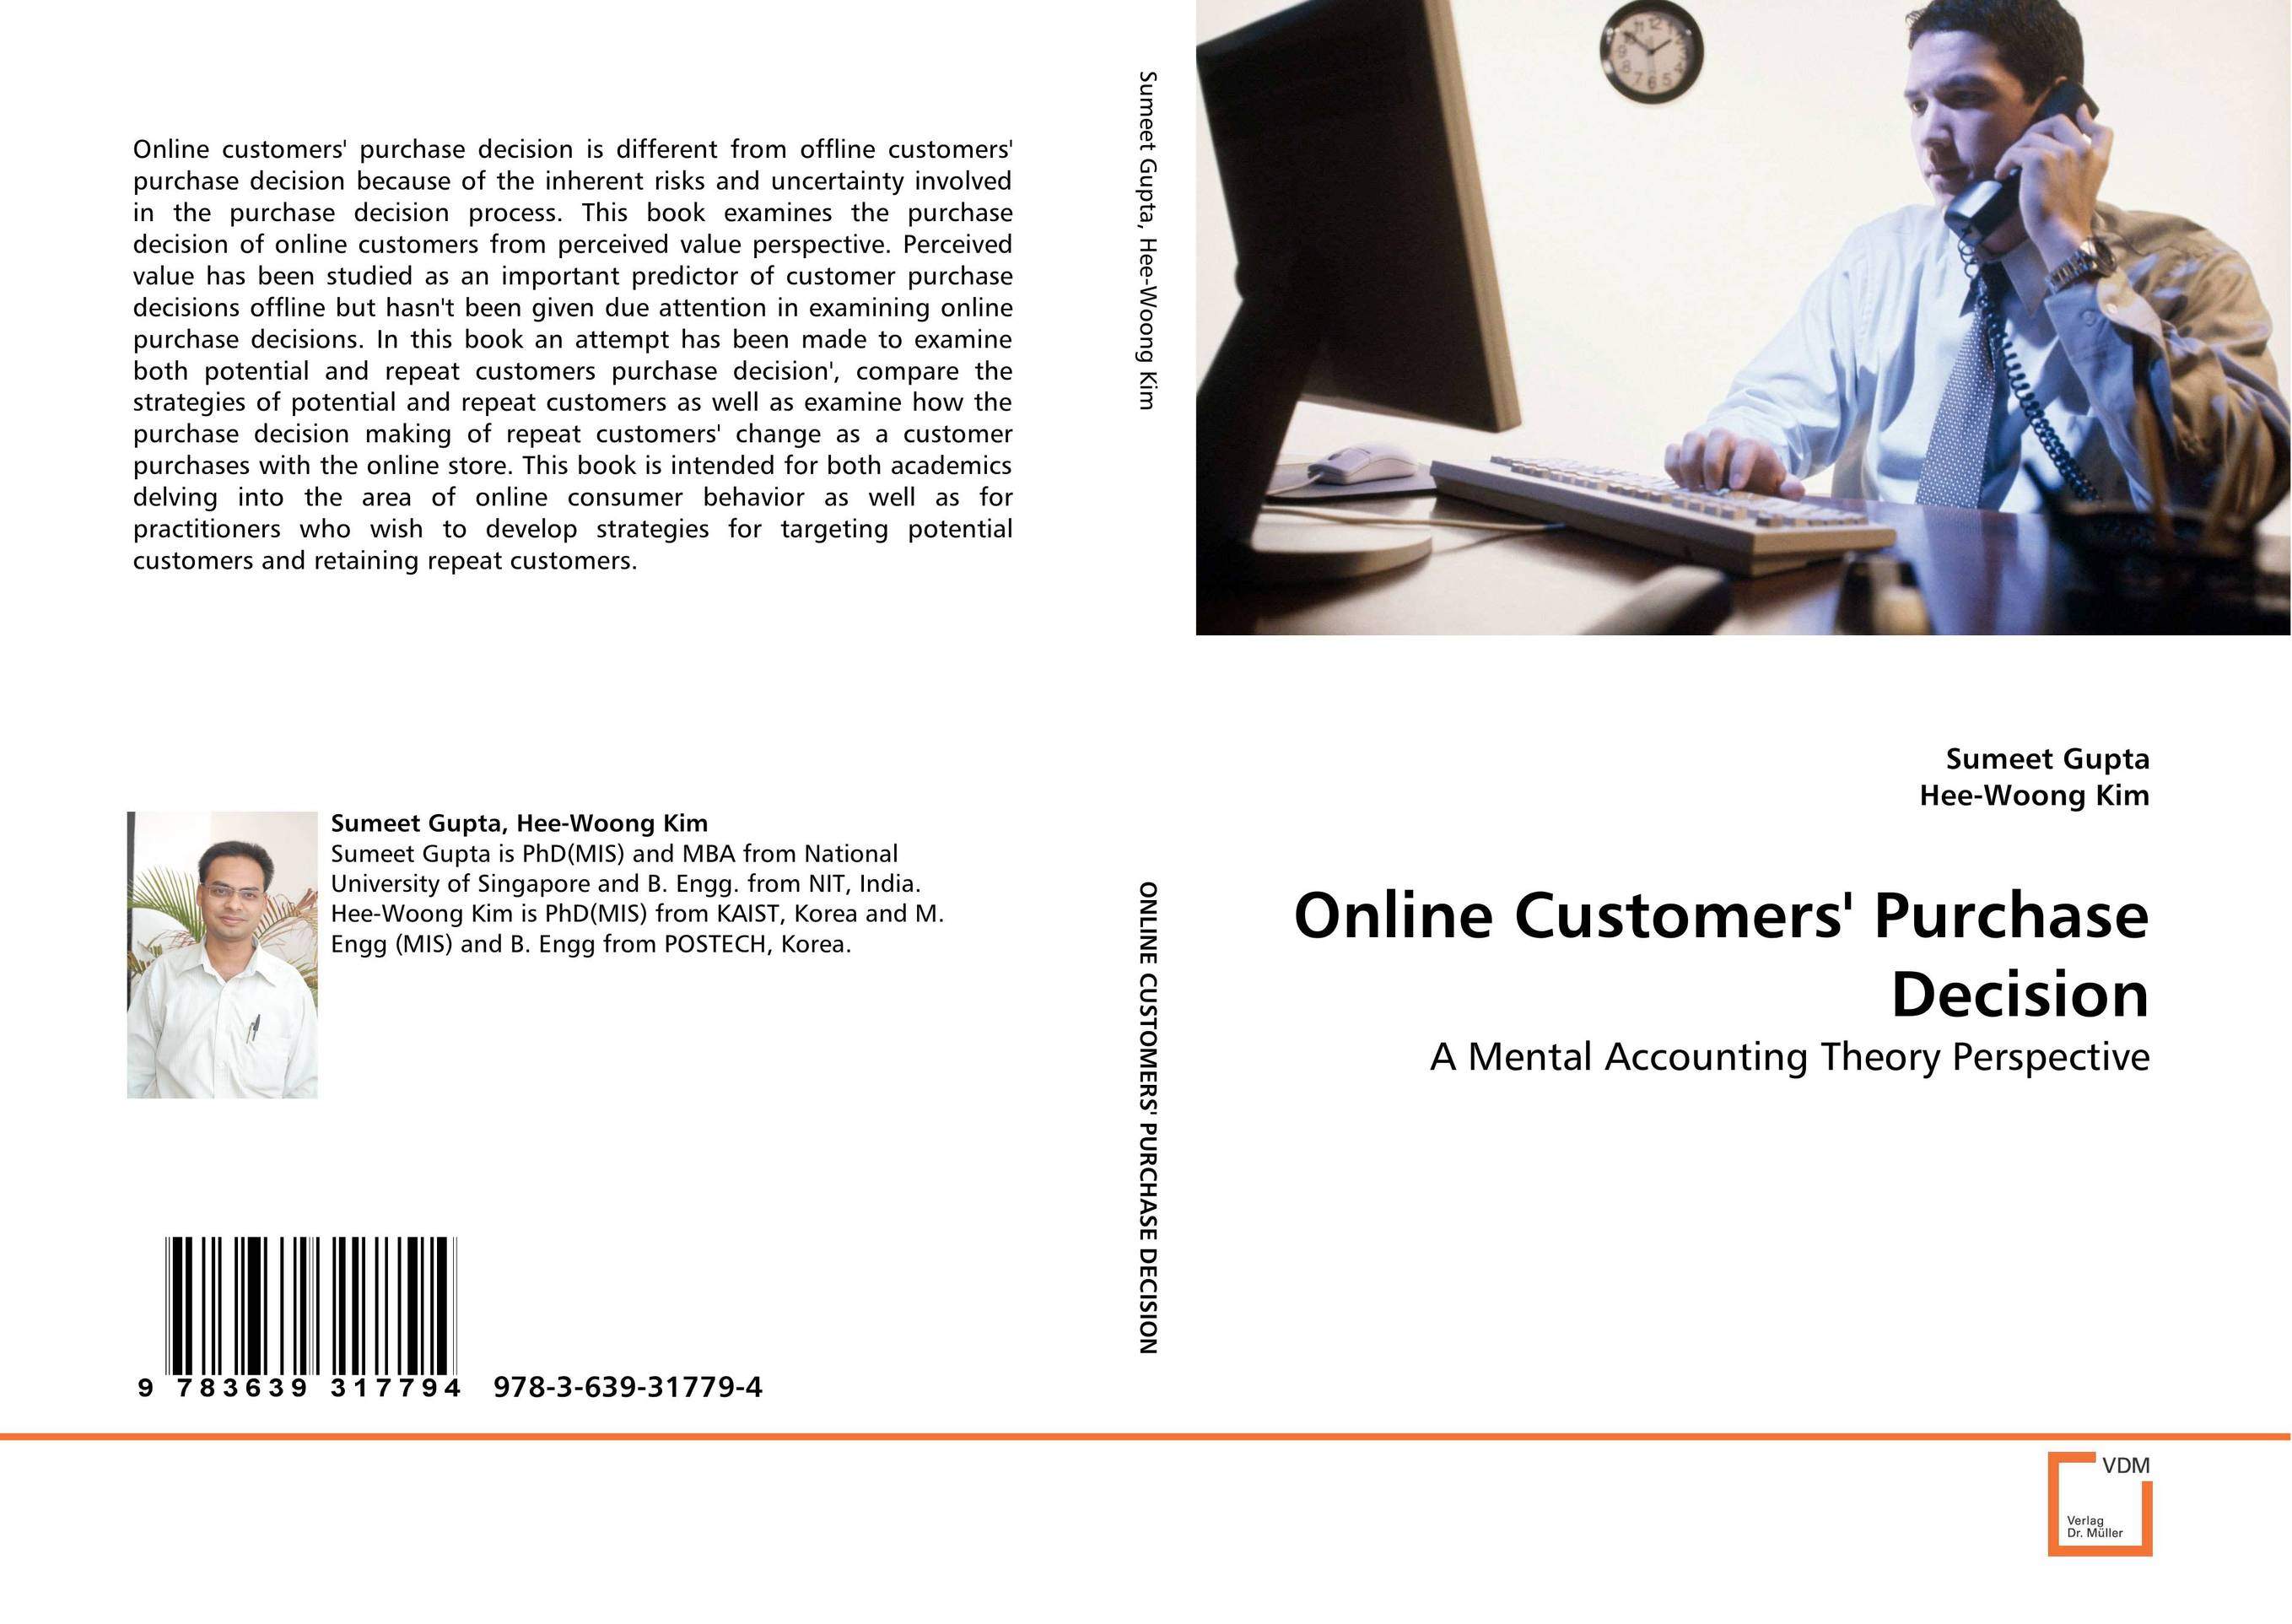 Online Customers' Purchase Decision